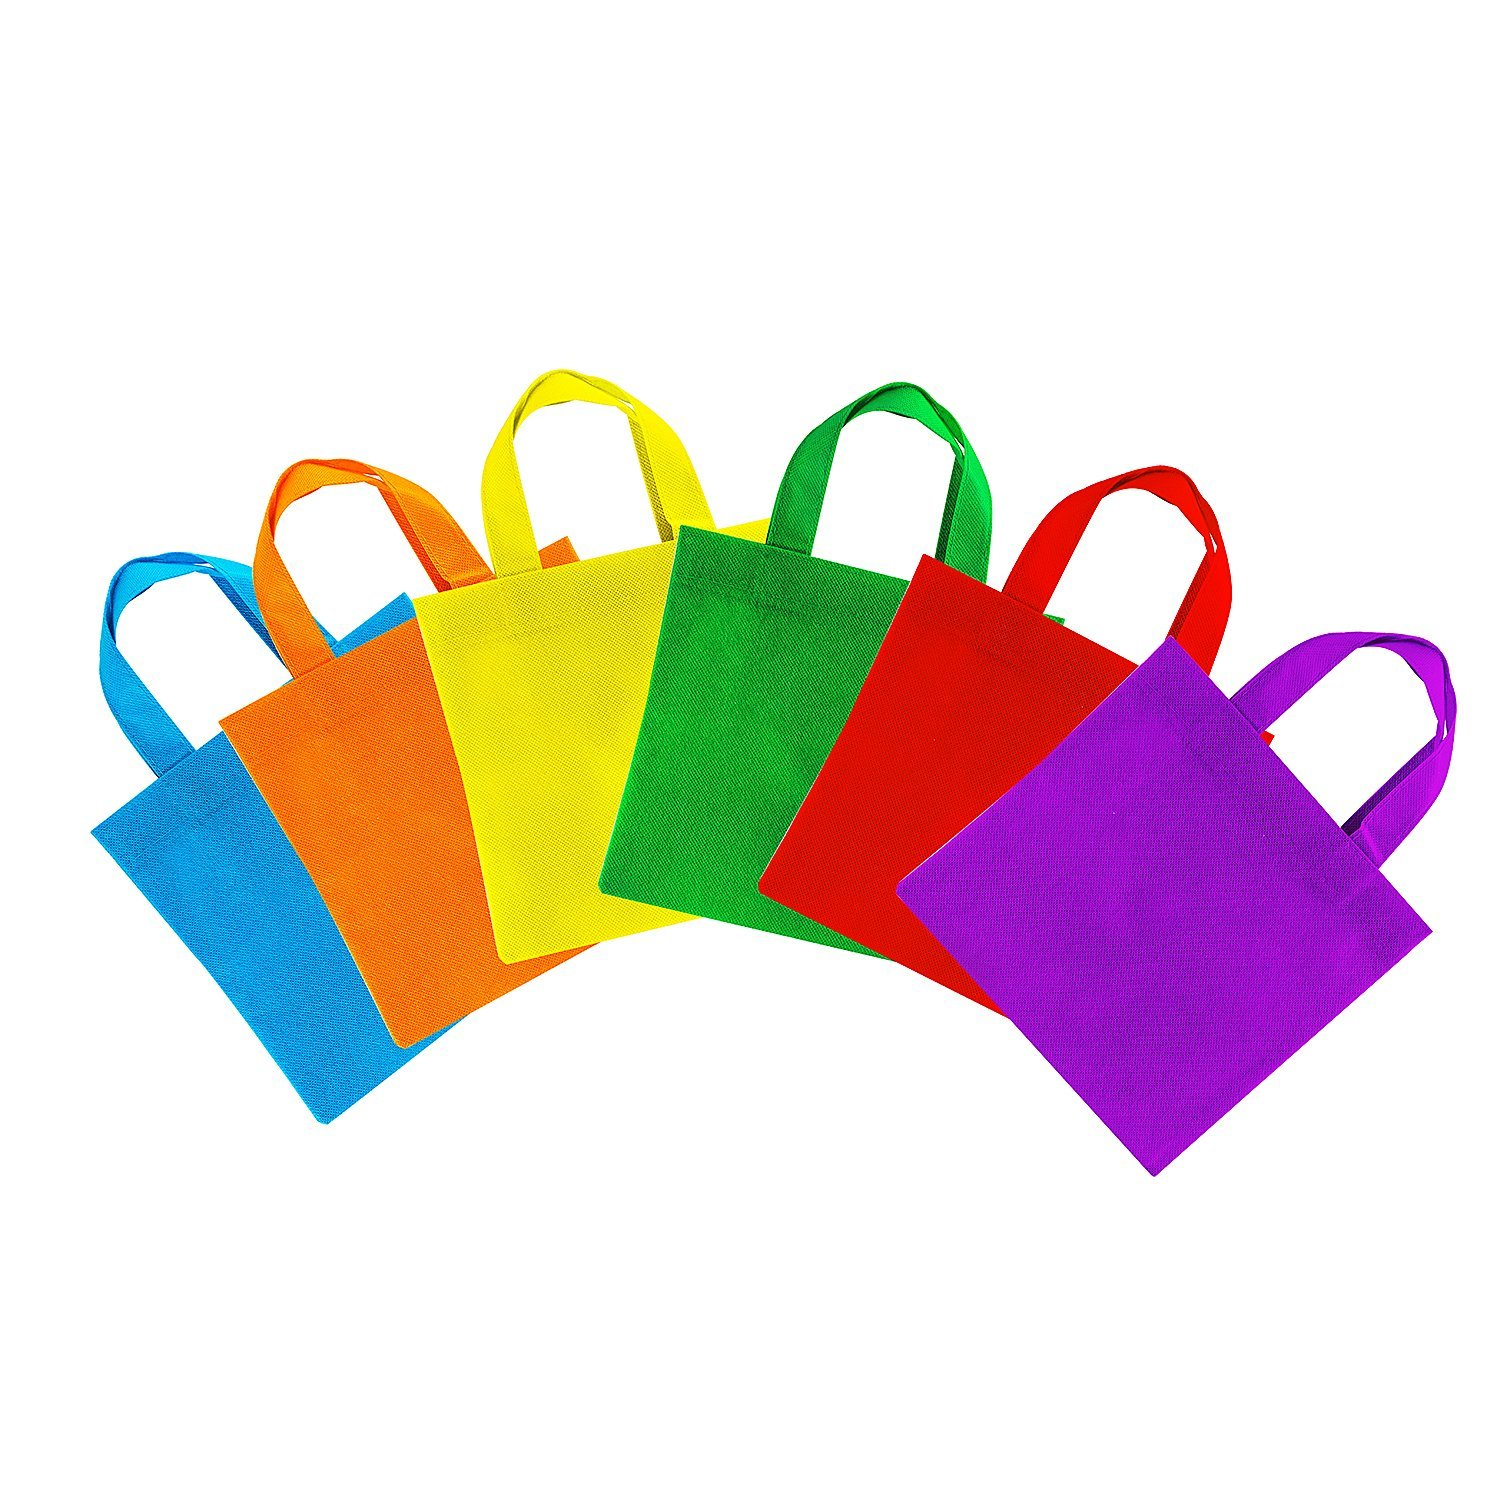 "Assorted Colorful Solid Blank Canvas Party Gift Tote Bags Rainbow Colors with Handles for Birthday Favors, Snacks, Decoration, Arts & Crafts, Event Supplies (12 Bags) by Super Z Outlet (8"" Inches)"